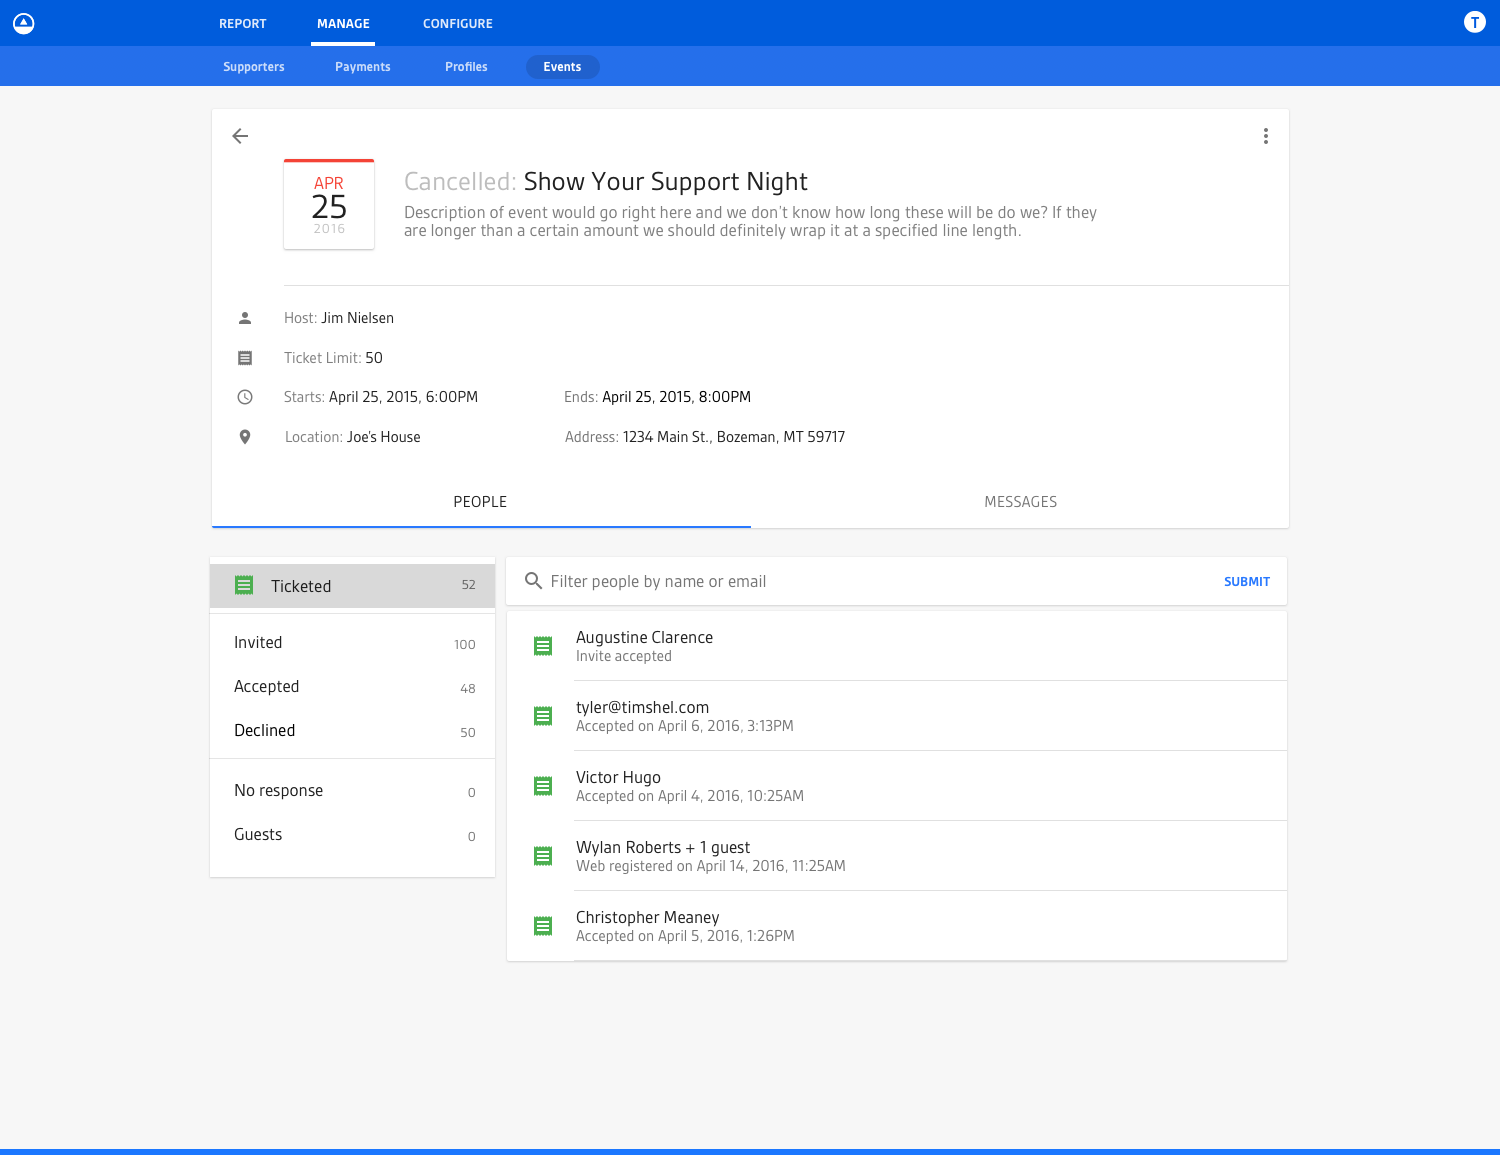 Screenshot of the fourth iteration of the individual event view for a cancelled event